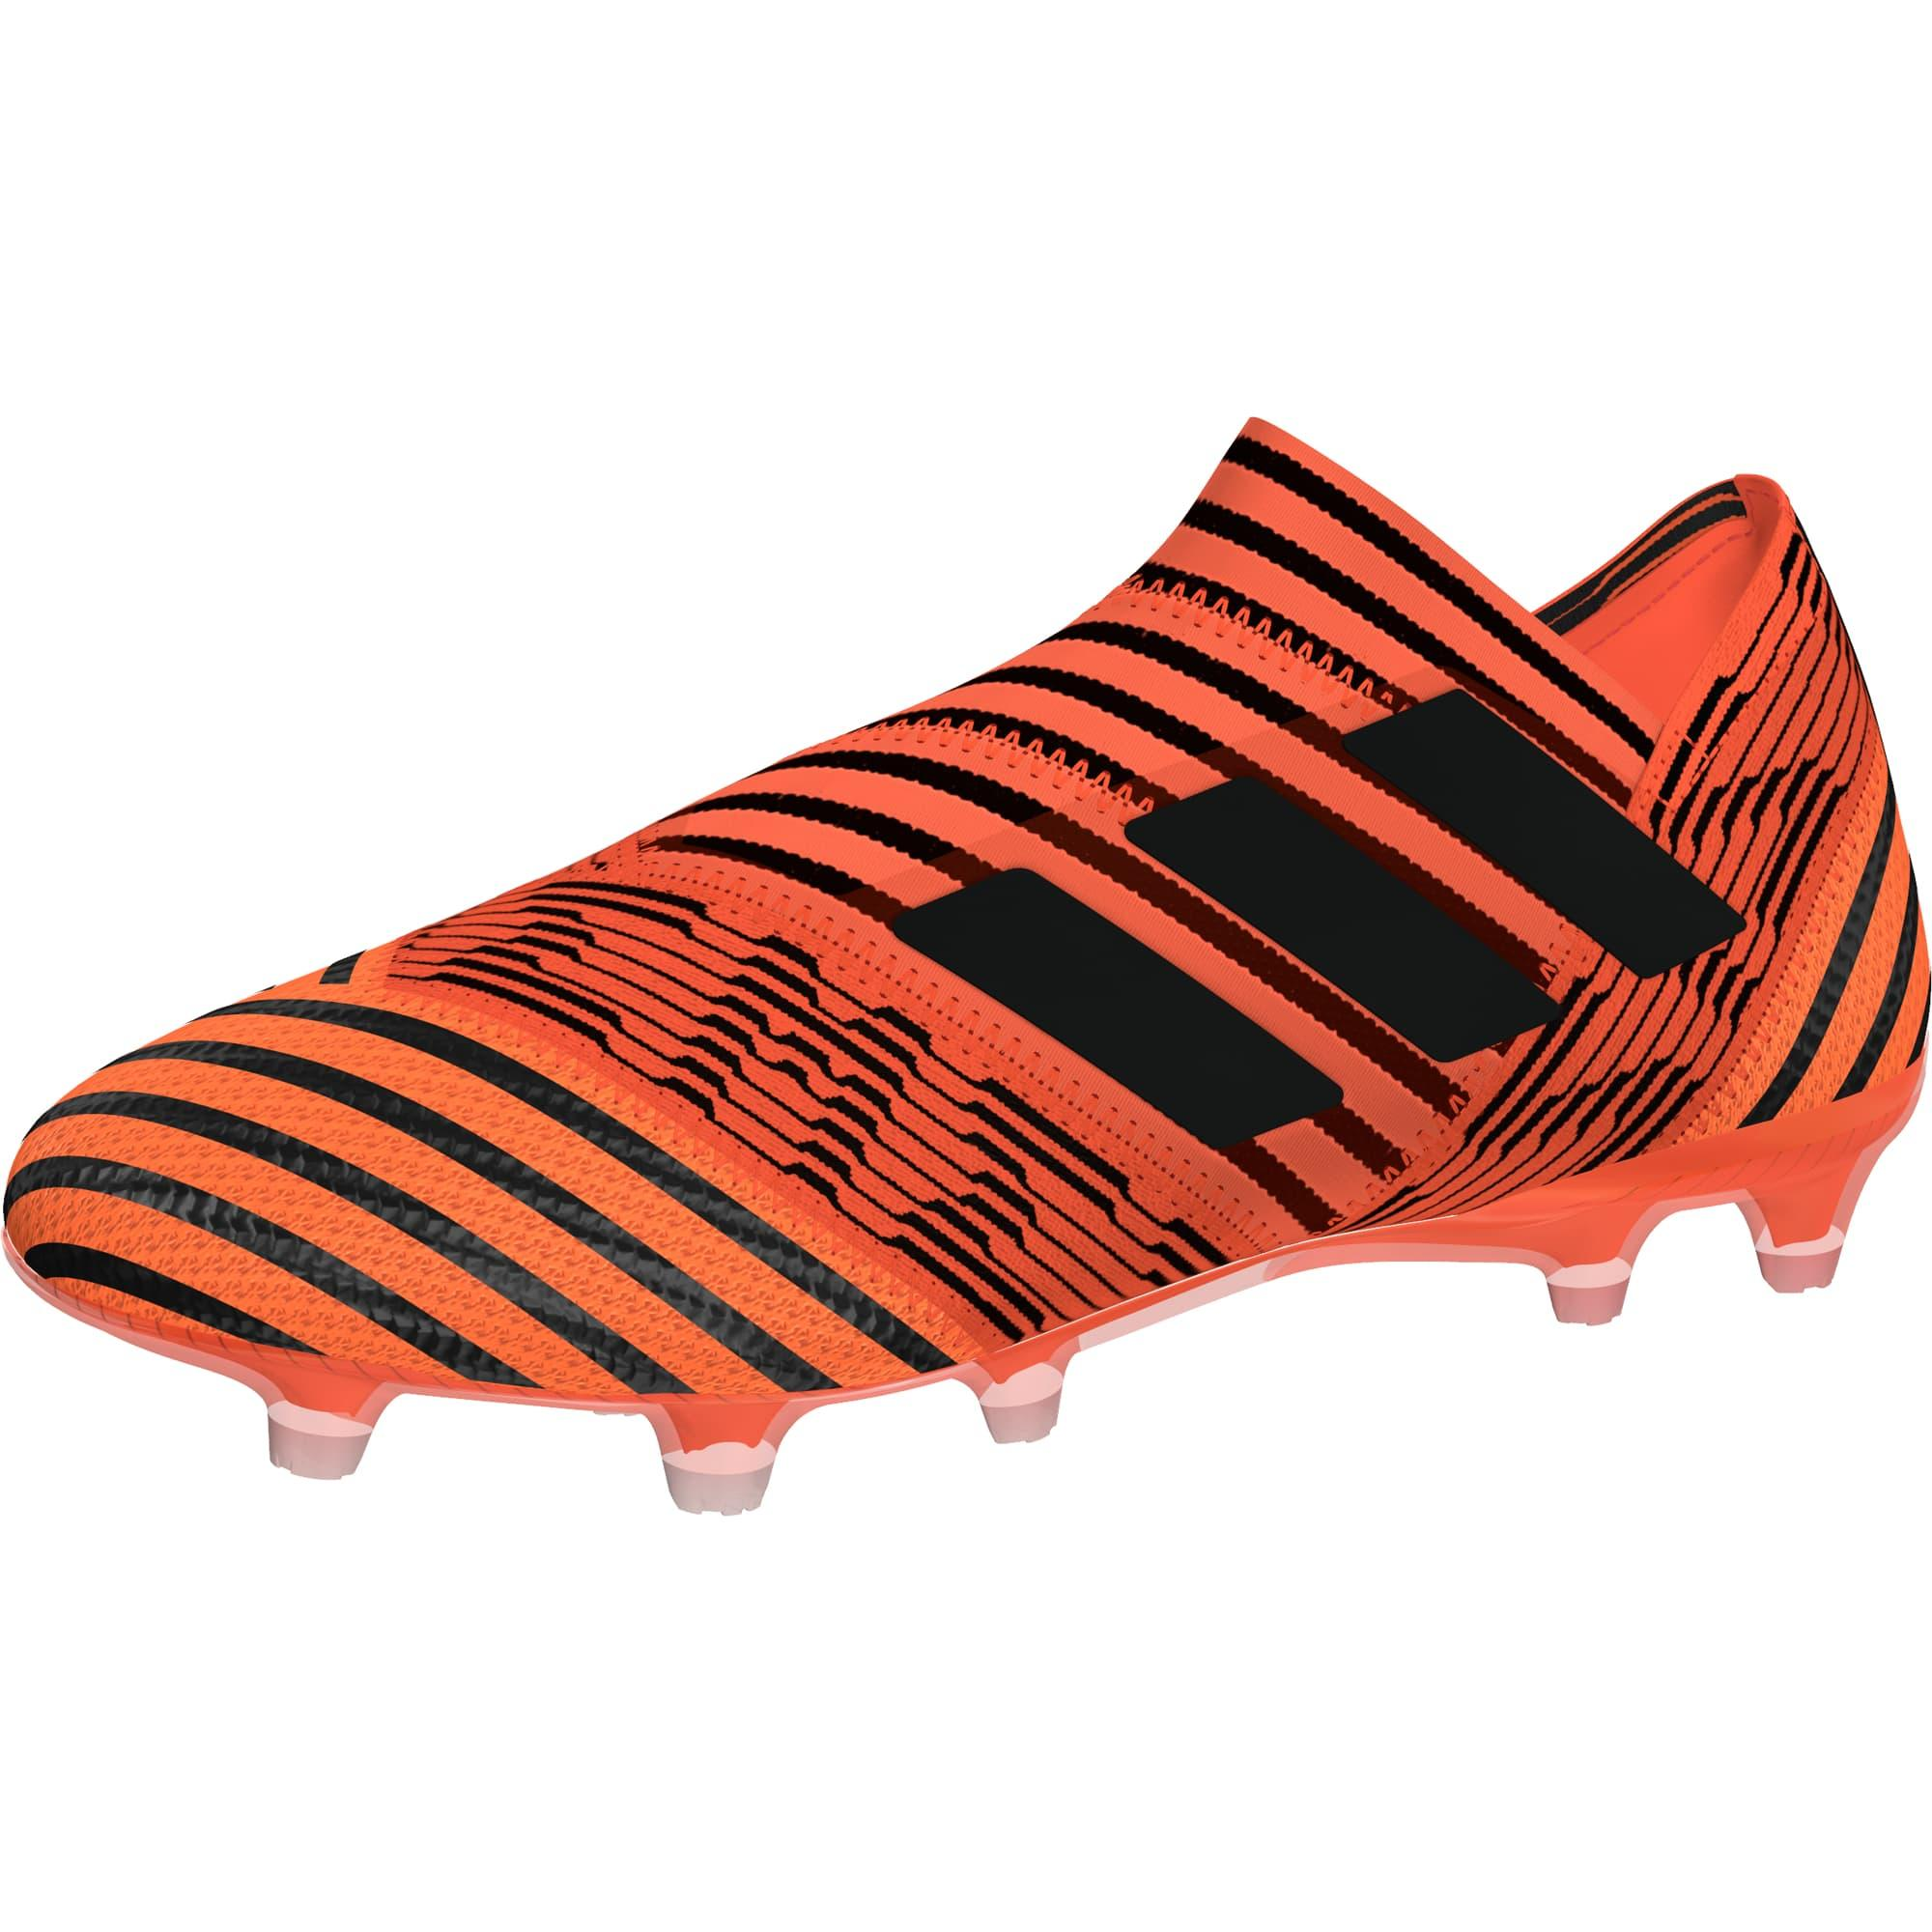 f5cd2e6ba853 adidas springblade price in nigeria